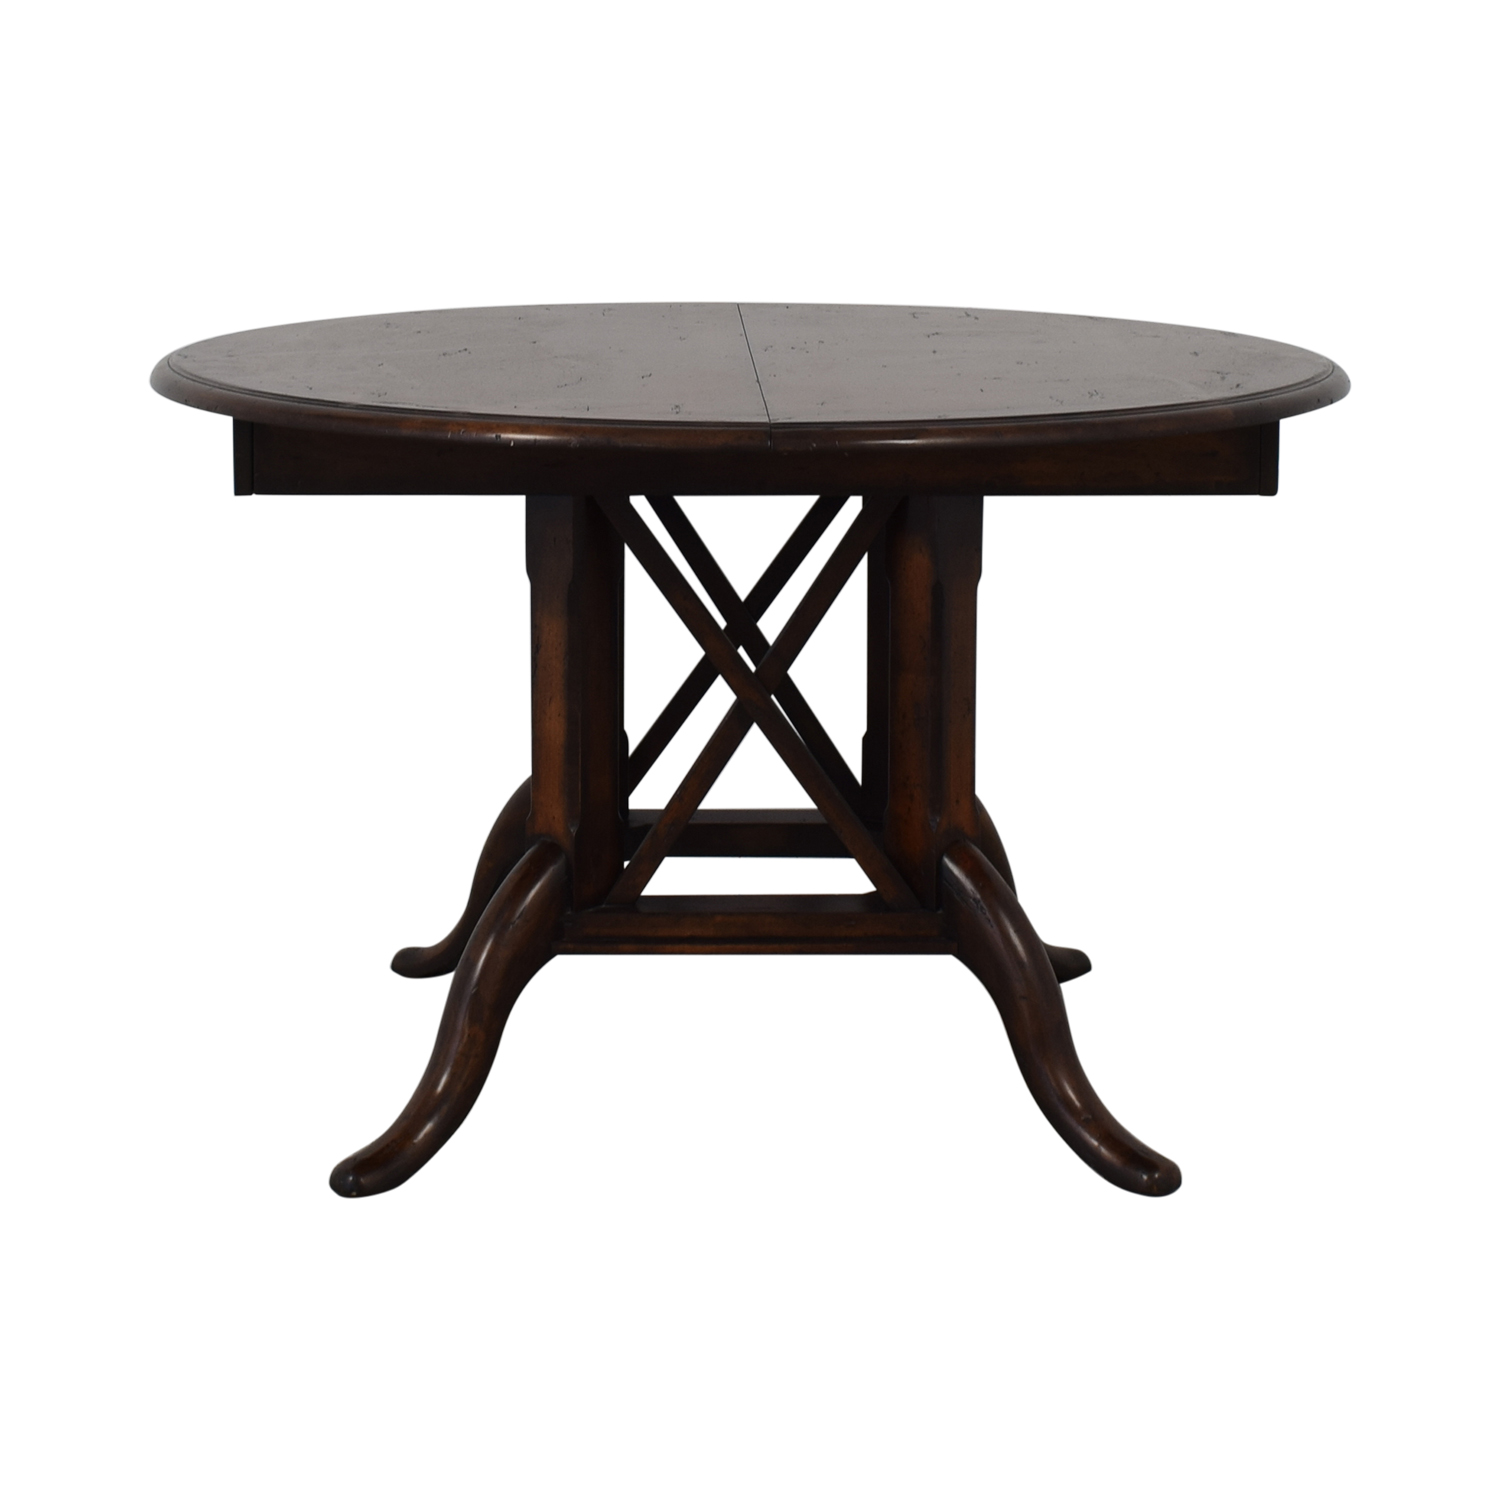 83% OFF - Henredon Furniture Henredon Mahogany Extension Dining Room Table  / Tables